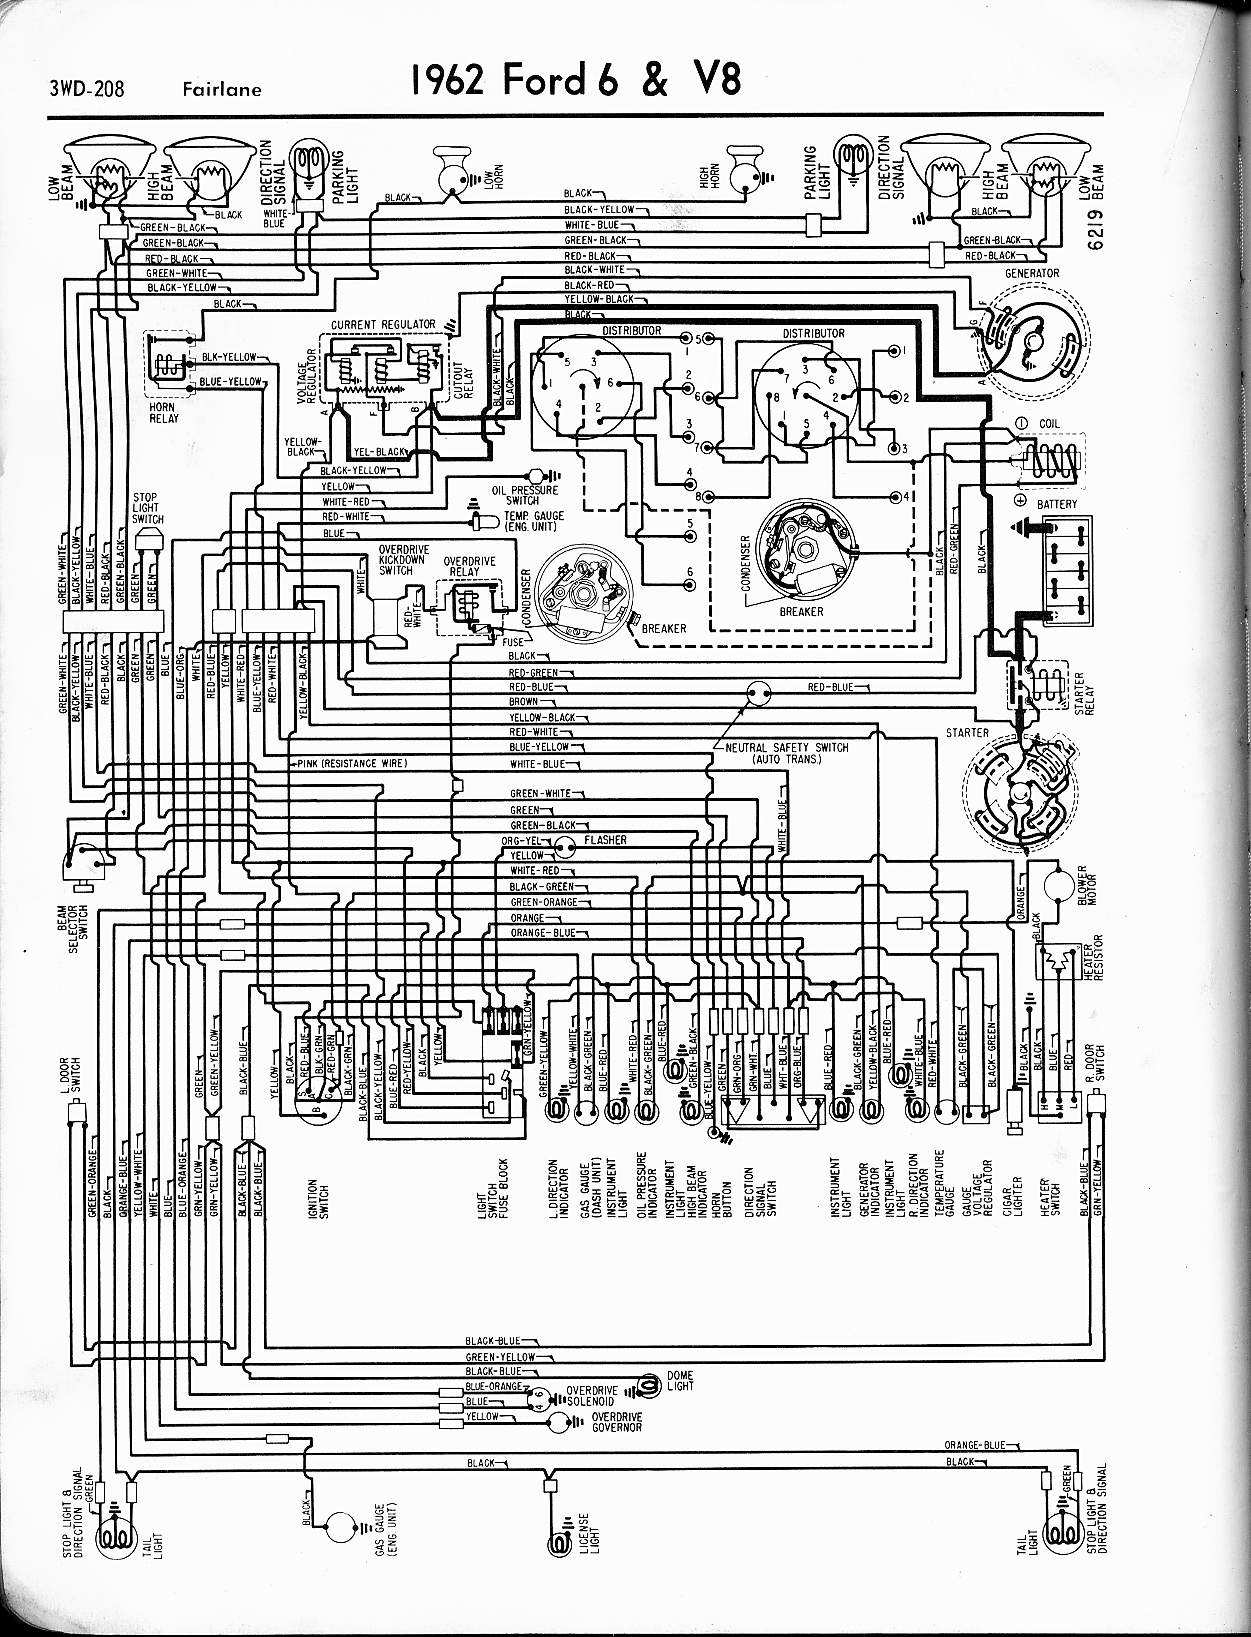 1956 Ford Fairlane Wiring Diagram Archive Of Automotive 57 65 Diagrams Rh Oldcarmanualproject Com Turn Signal